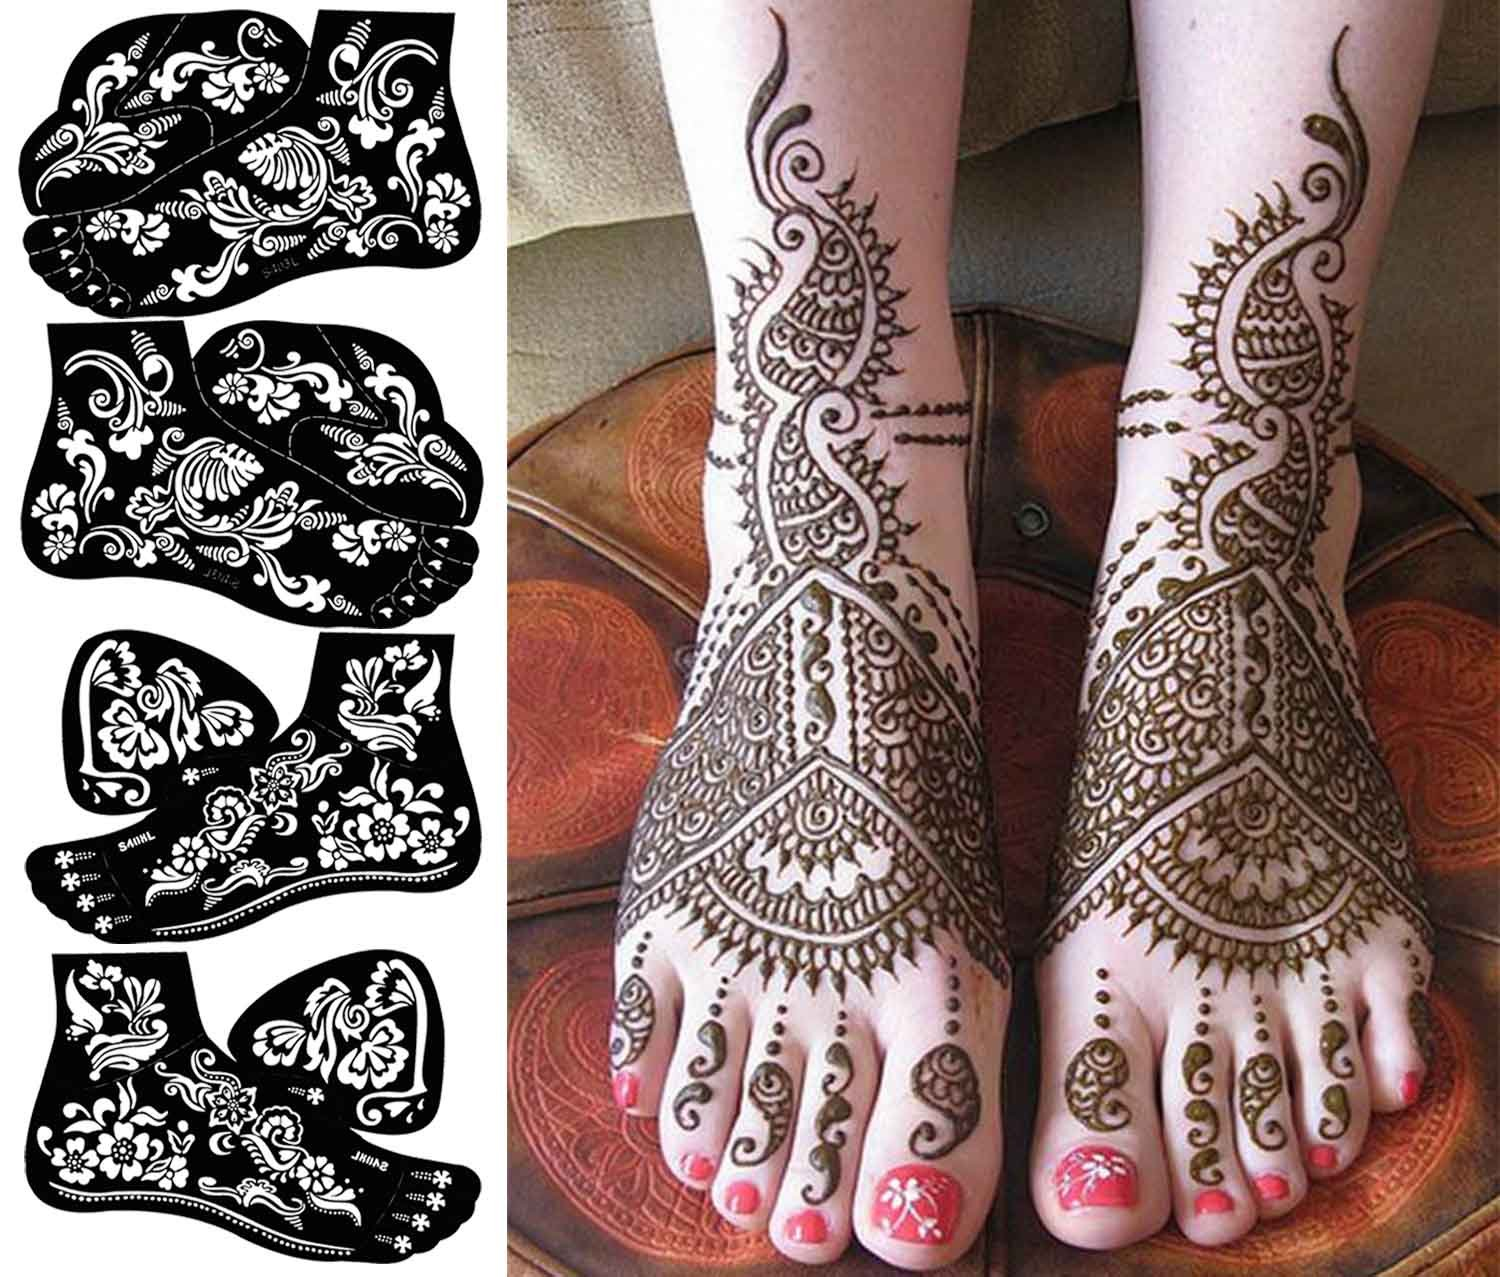 COKOHAPPY 4 Sheets Foot Indian Painting Tattoo Stencil Self-Adhesive Body Art Designs for Foots - Temporary Indian Arabian Tattoo Reusable Stickers